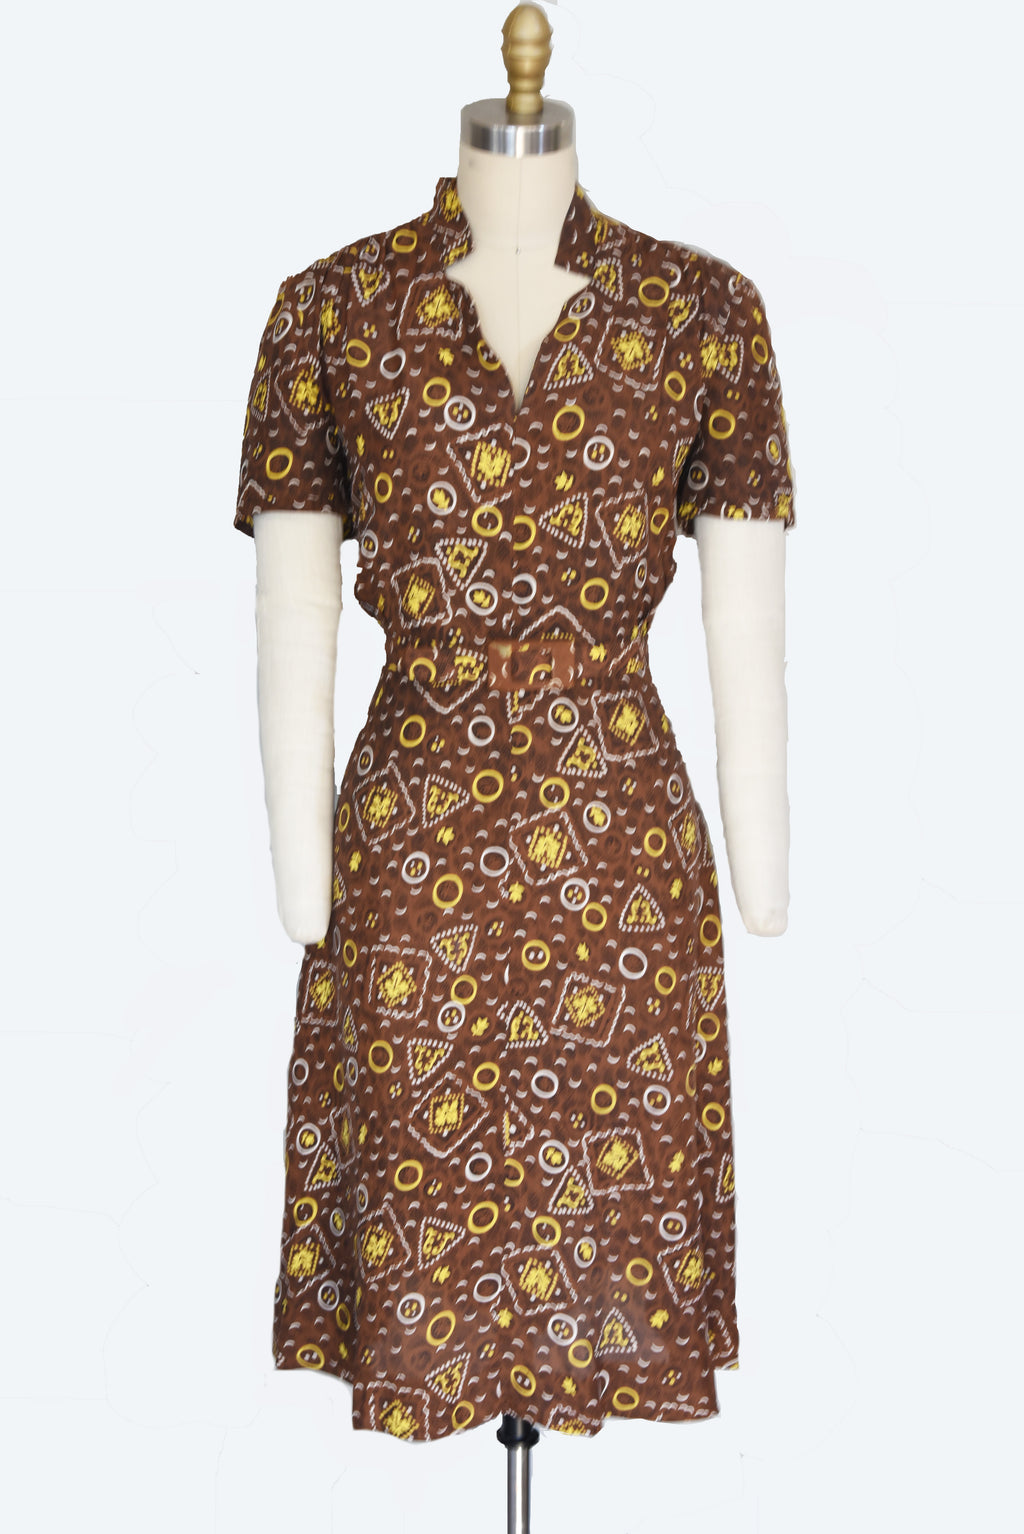 Smart 1940s Cold Rayon Leaf Print Dress in Brown, White and Yellow